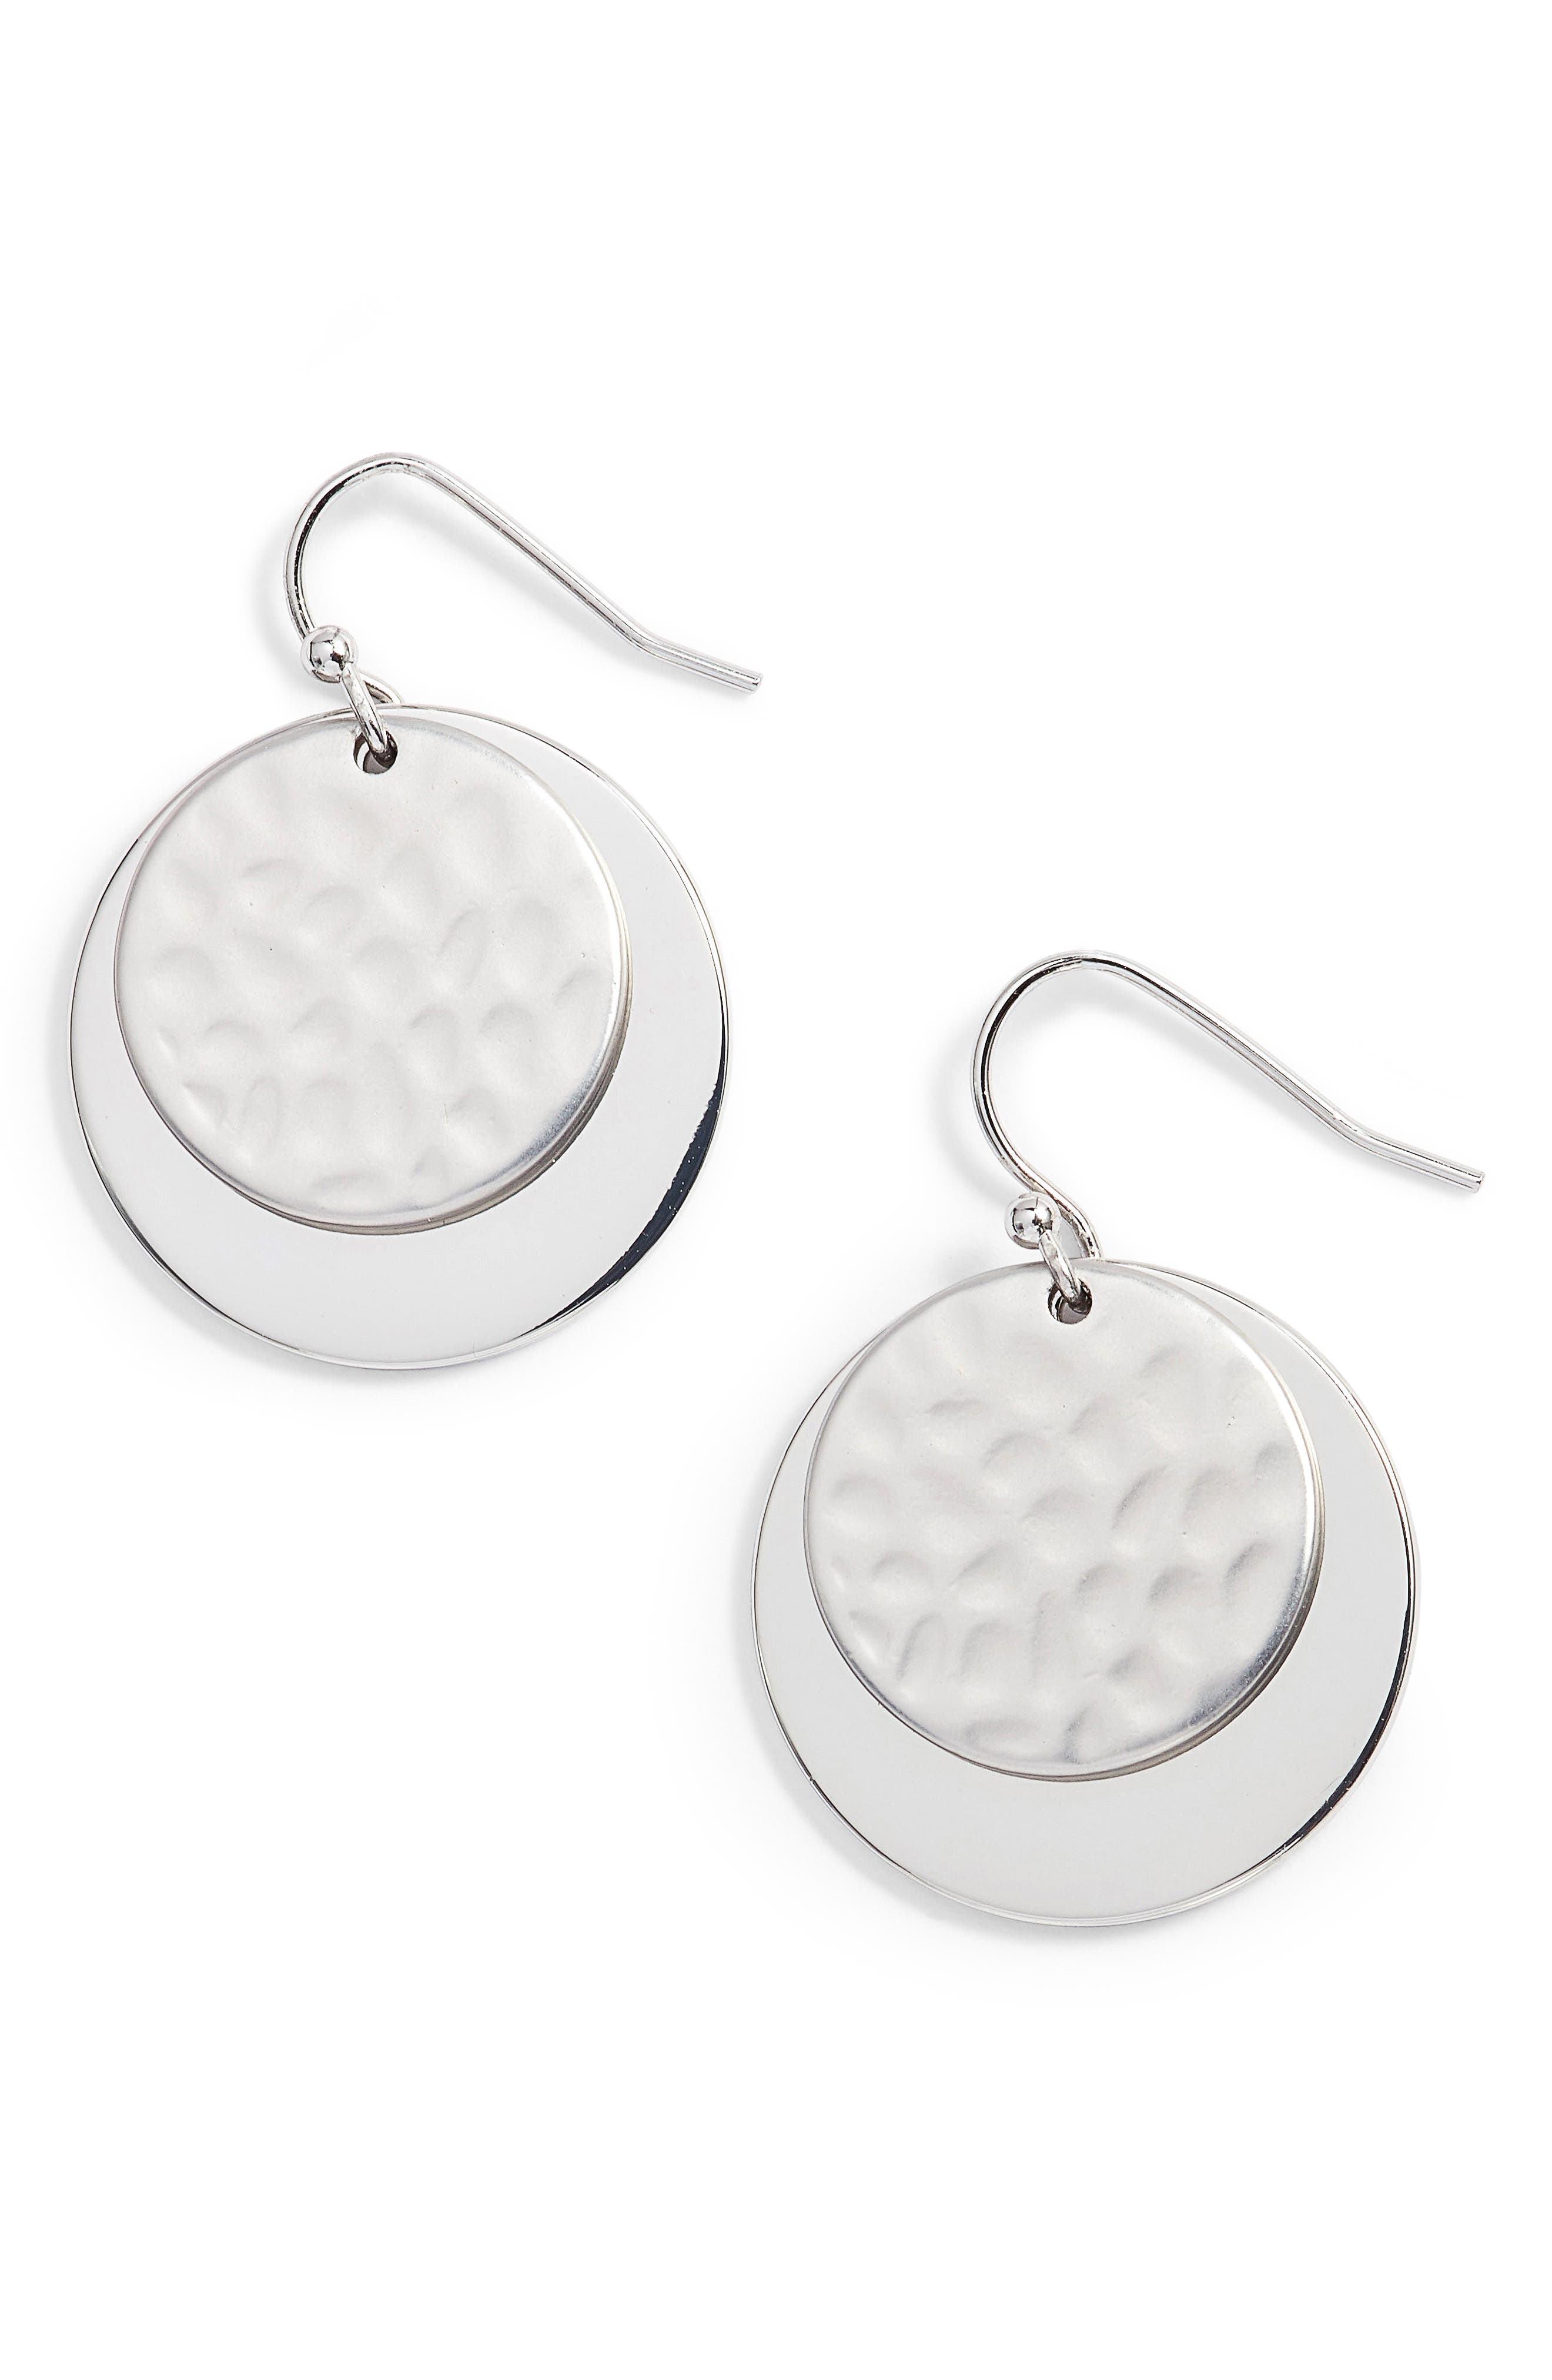 Hammered Metal Double Disc Earrings,                         Main,                         color, 040